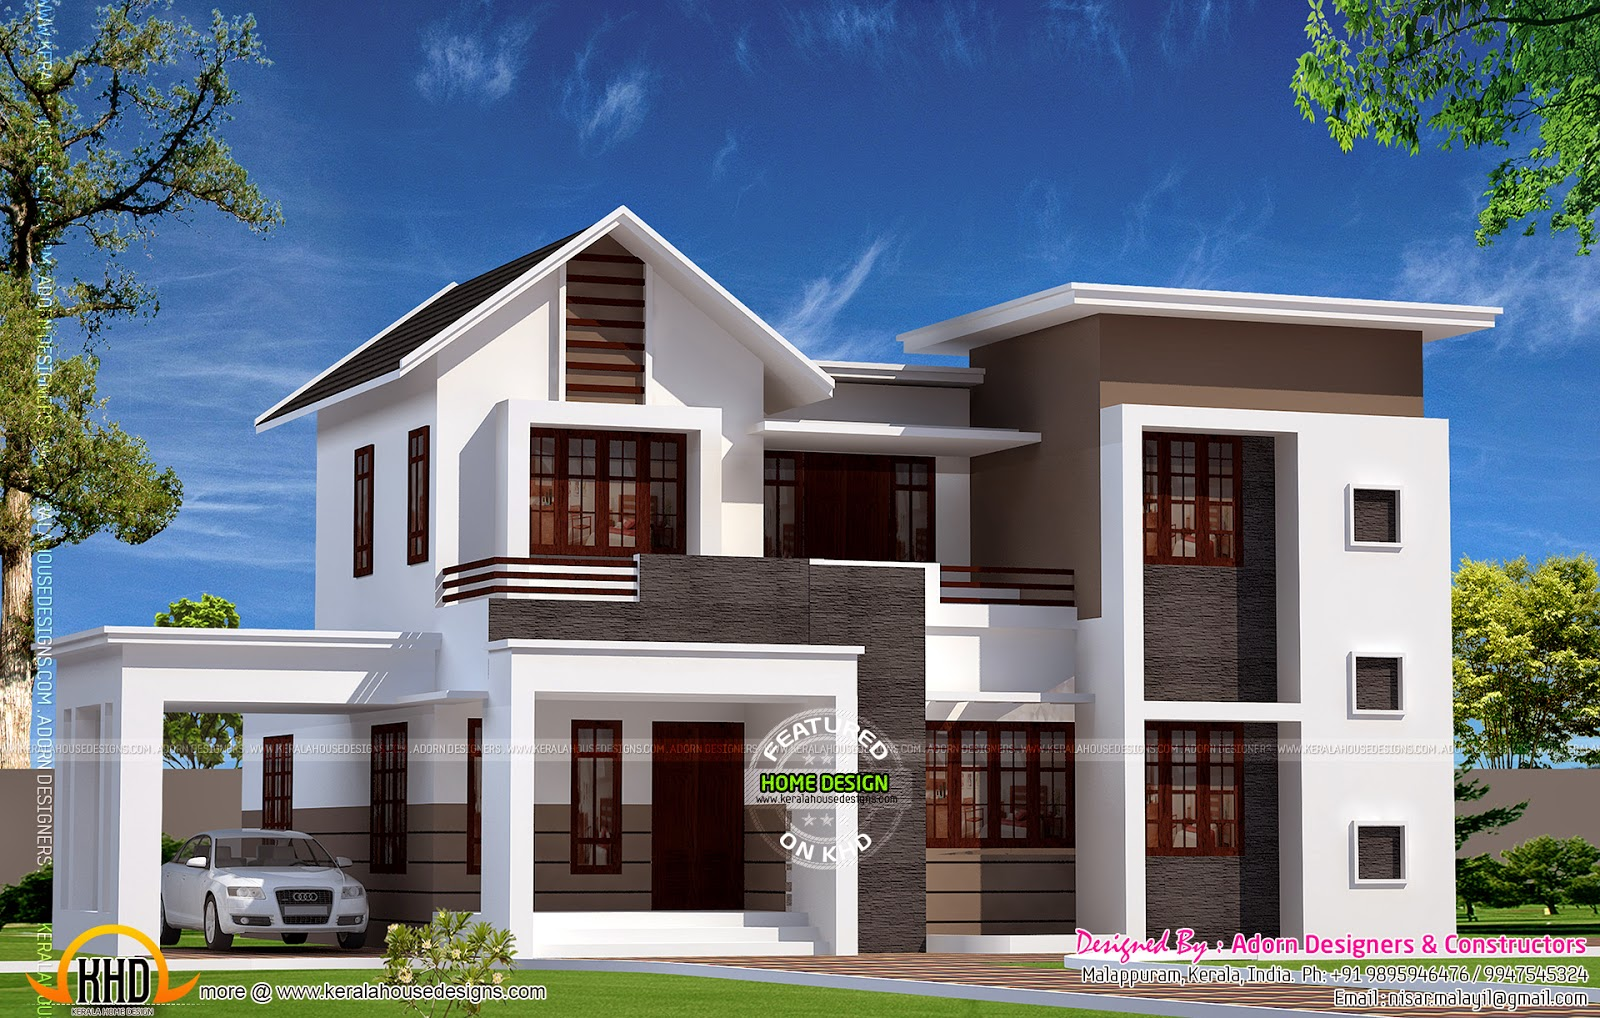 September 2014 Kerala Home Design And Floor Plans: new home layouts